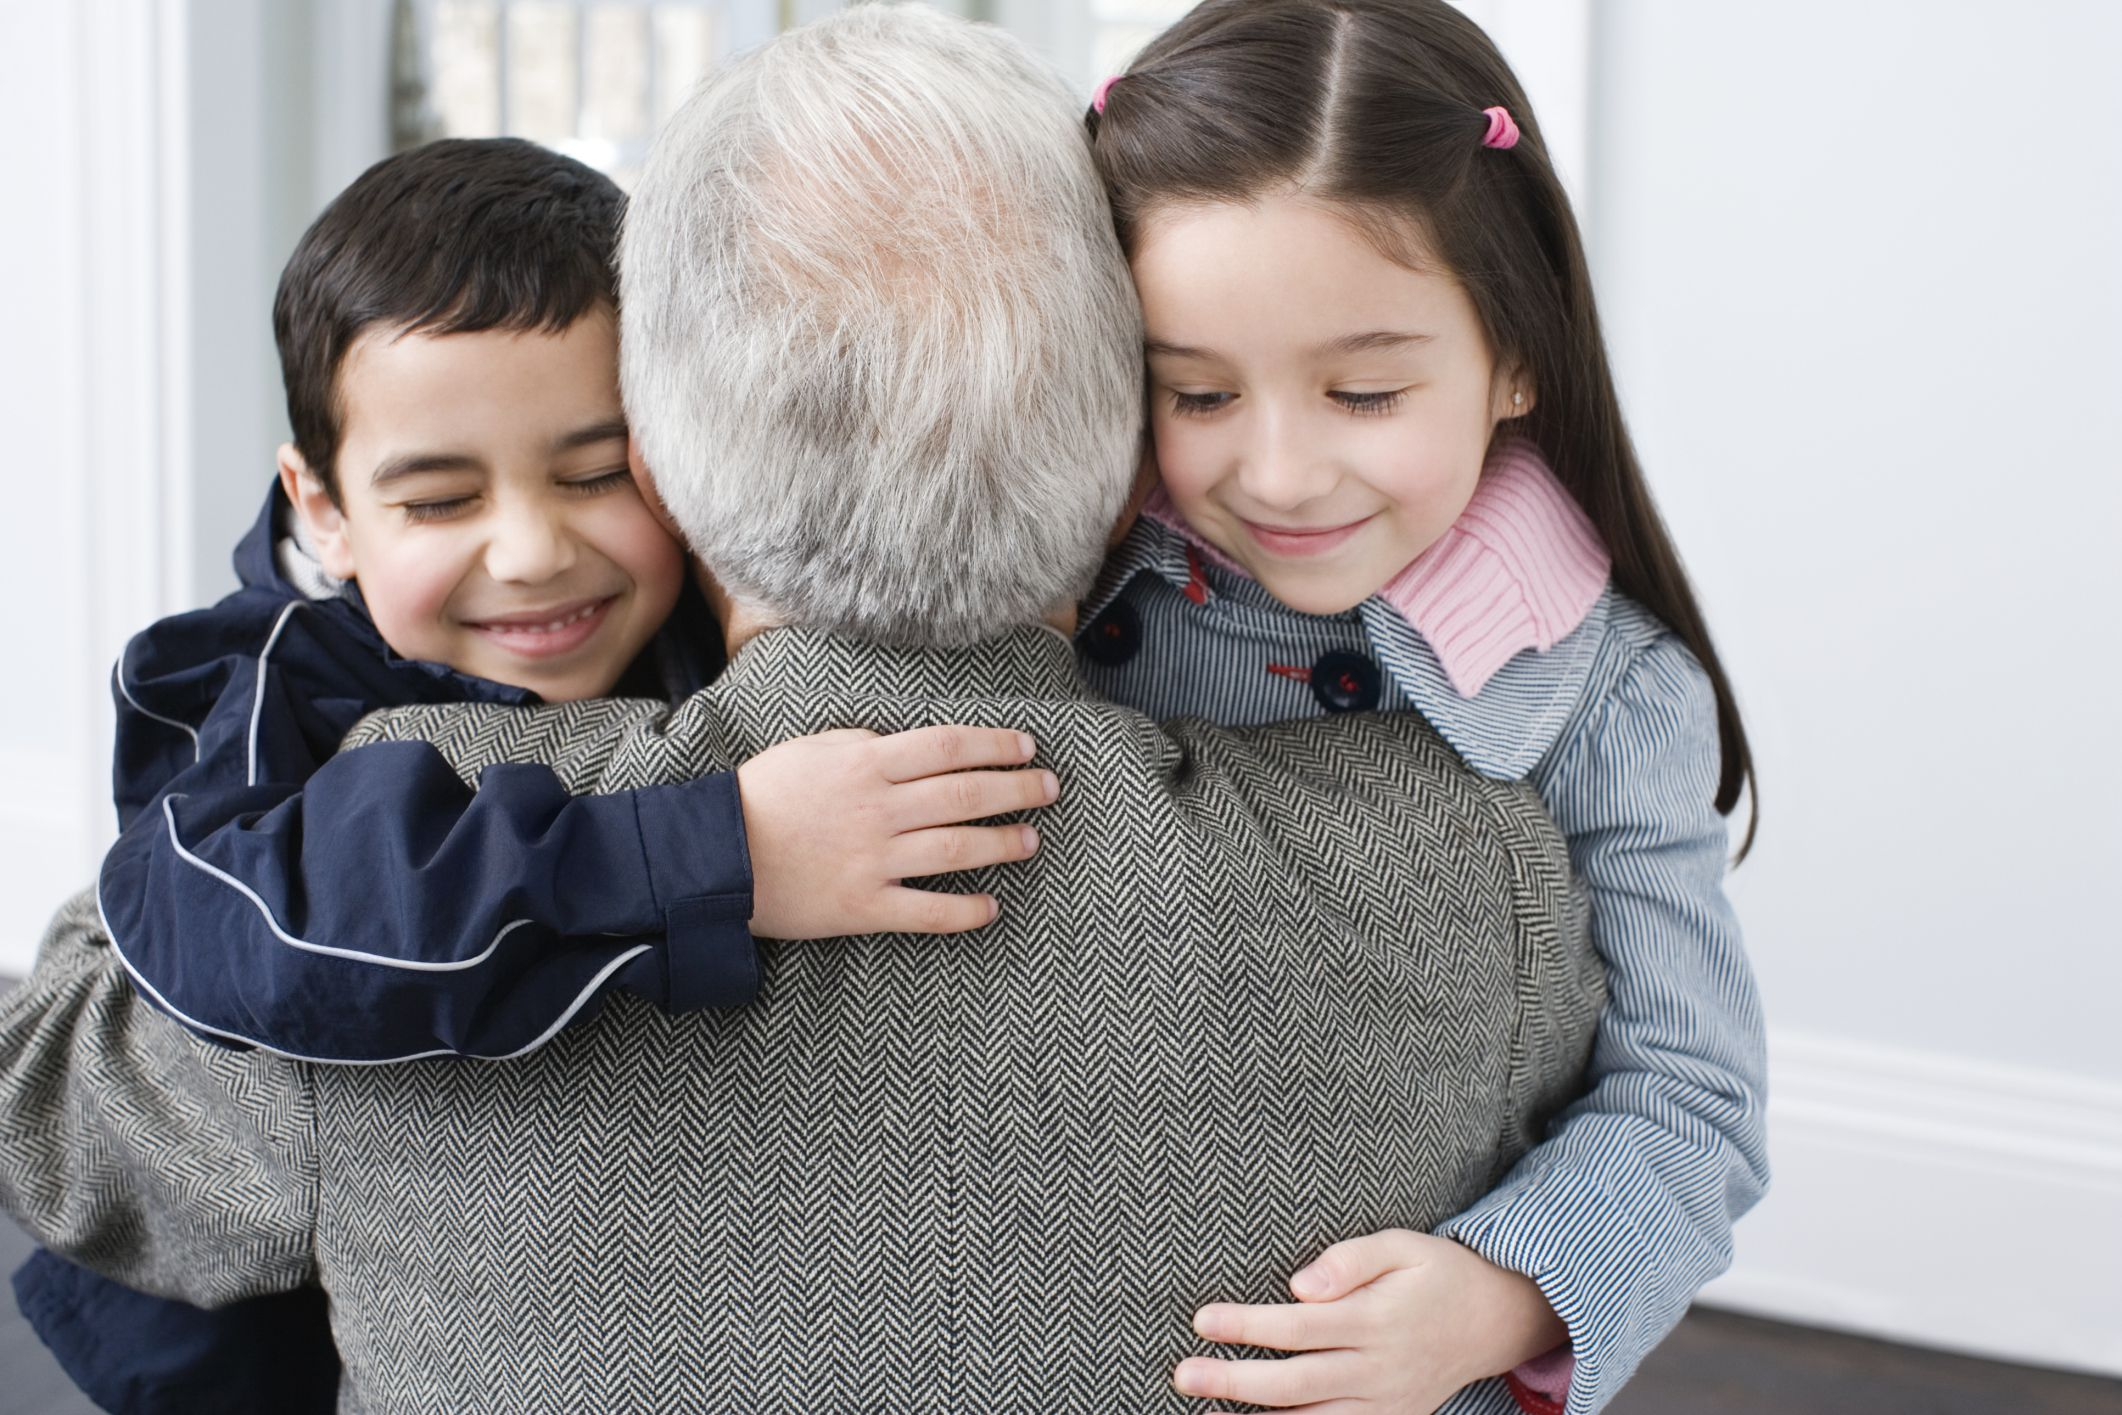 child custody between grandparents Child custody disputes are real and we want to help you resolve the conflict we care about your case and the well-being of the child.